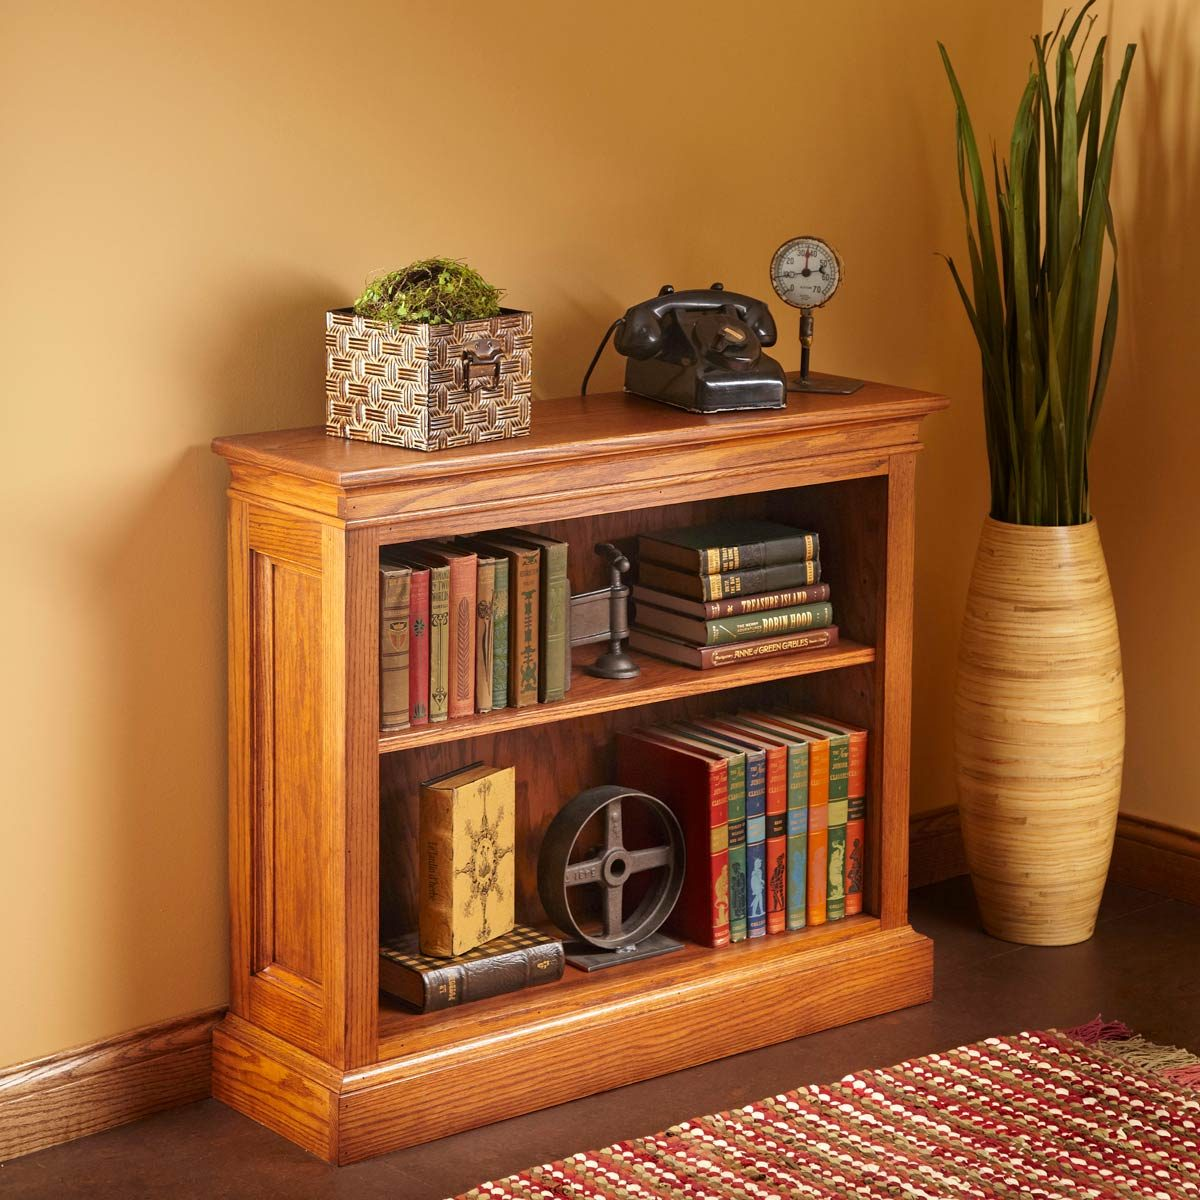 Build a Traditional Bookshelf